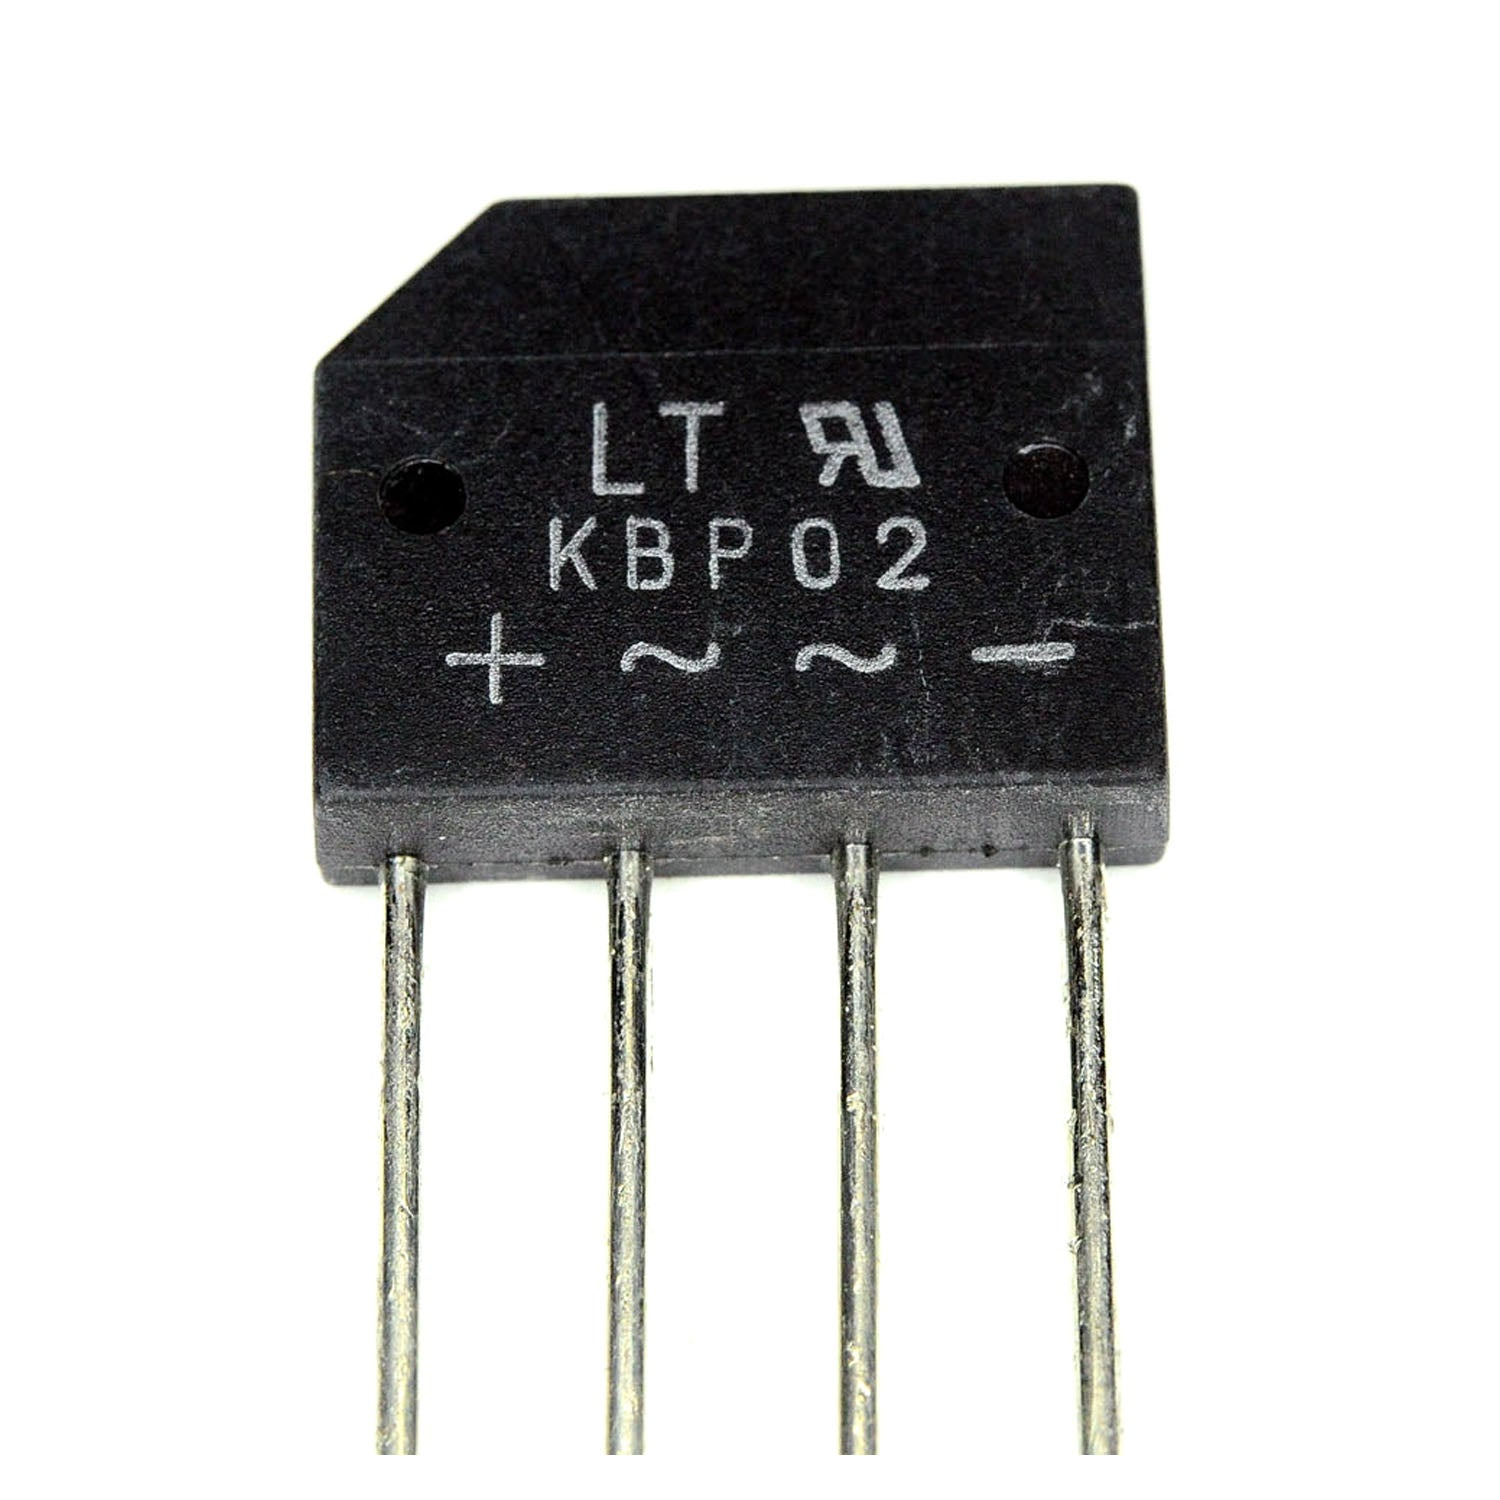 KBP02 Bridge Rectifier Diode 4P 2A 200V